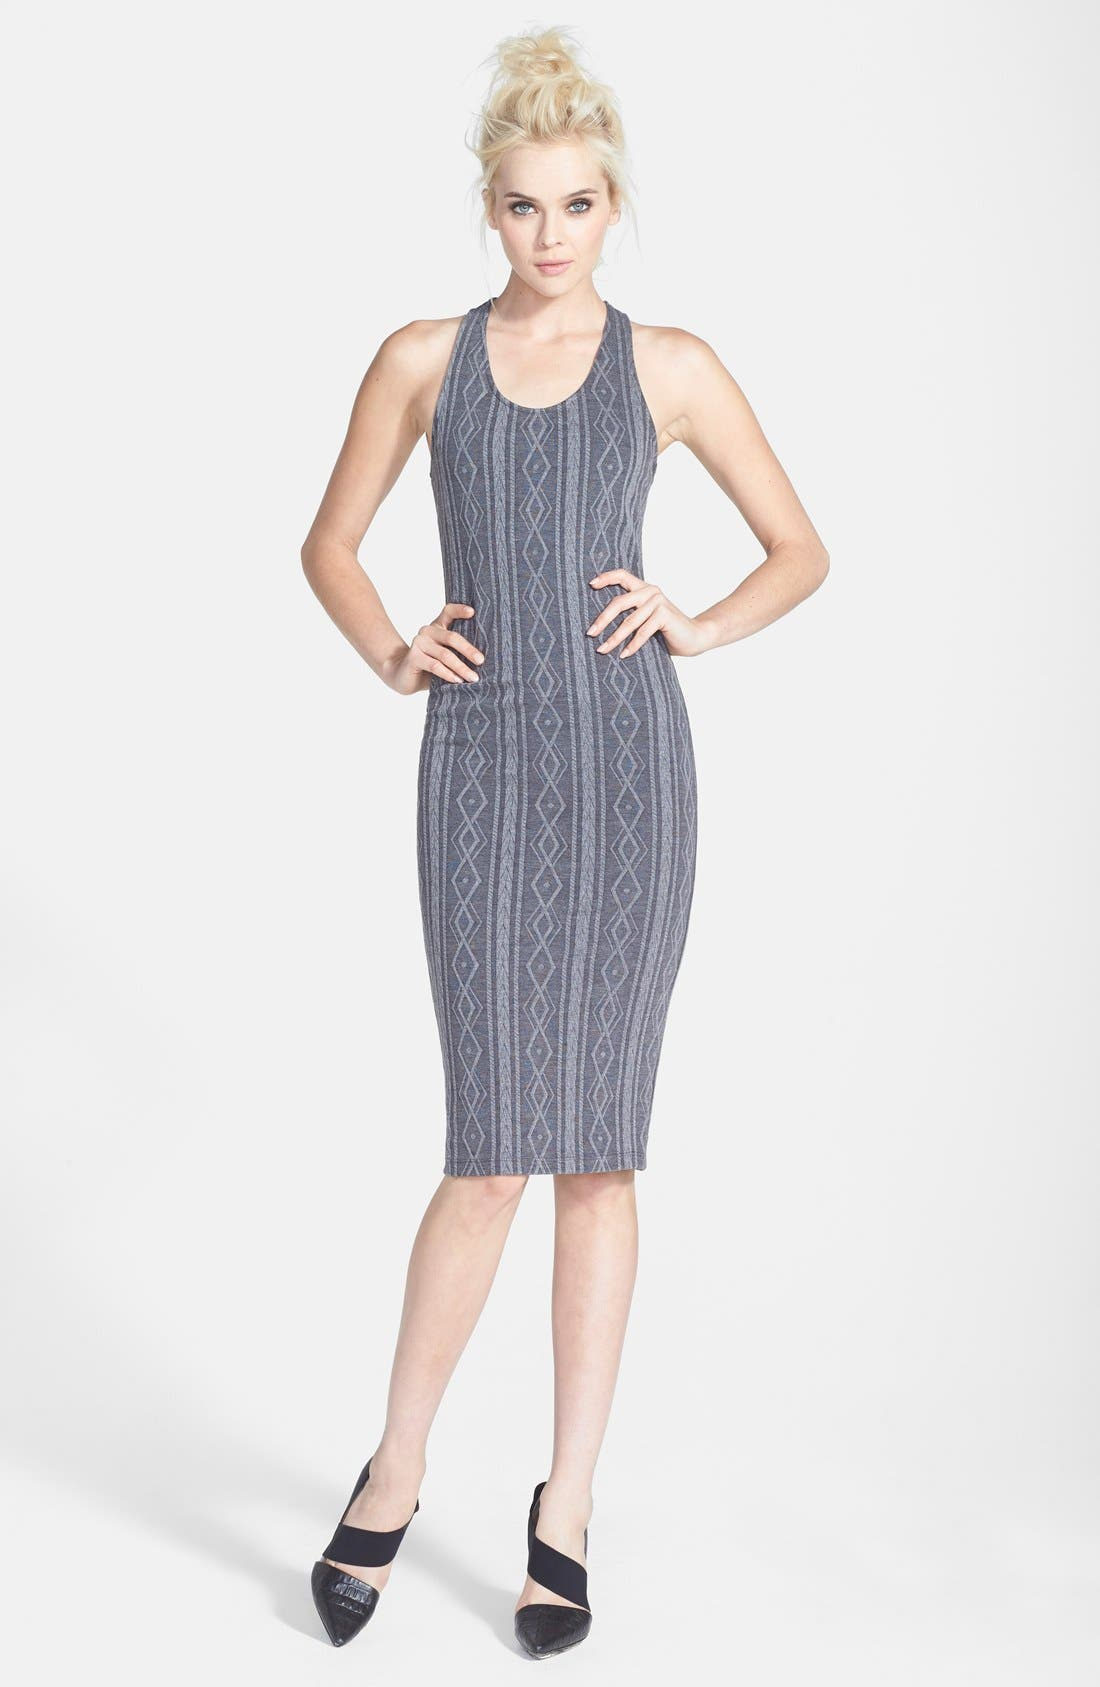 Alternate Image 1 Selected - ASTR Cross Back Body-Con Tank Dress